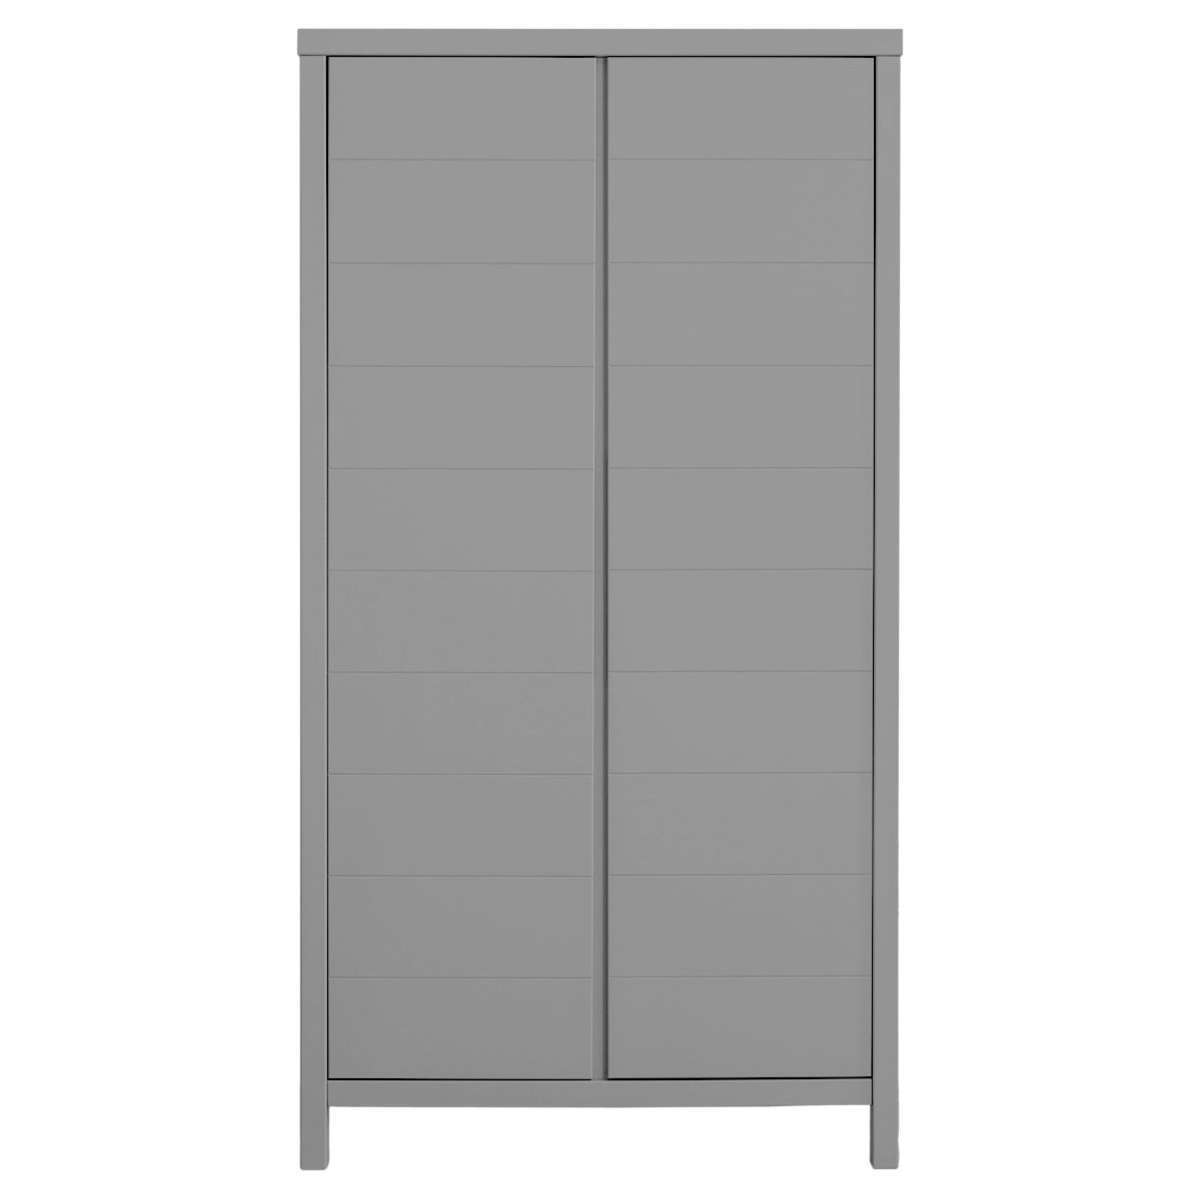 quax armoire 2 portes stripes griffin armoire quax sur. Black Bedroom Furniture Sets. Home Design Ideas